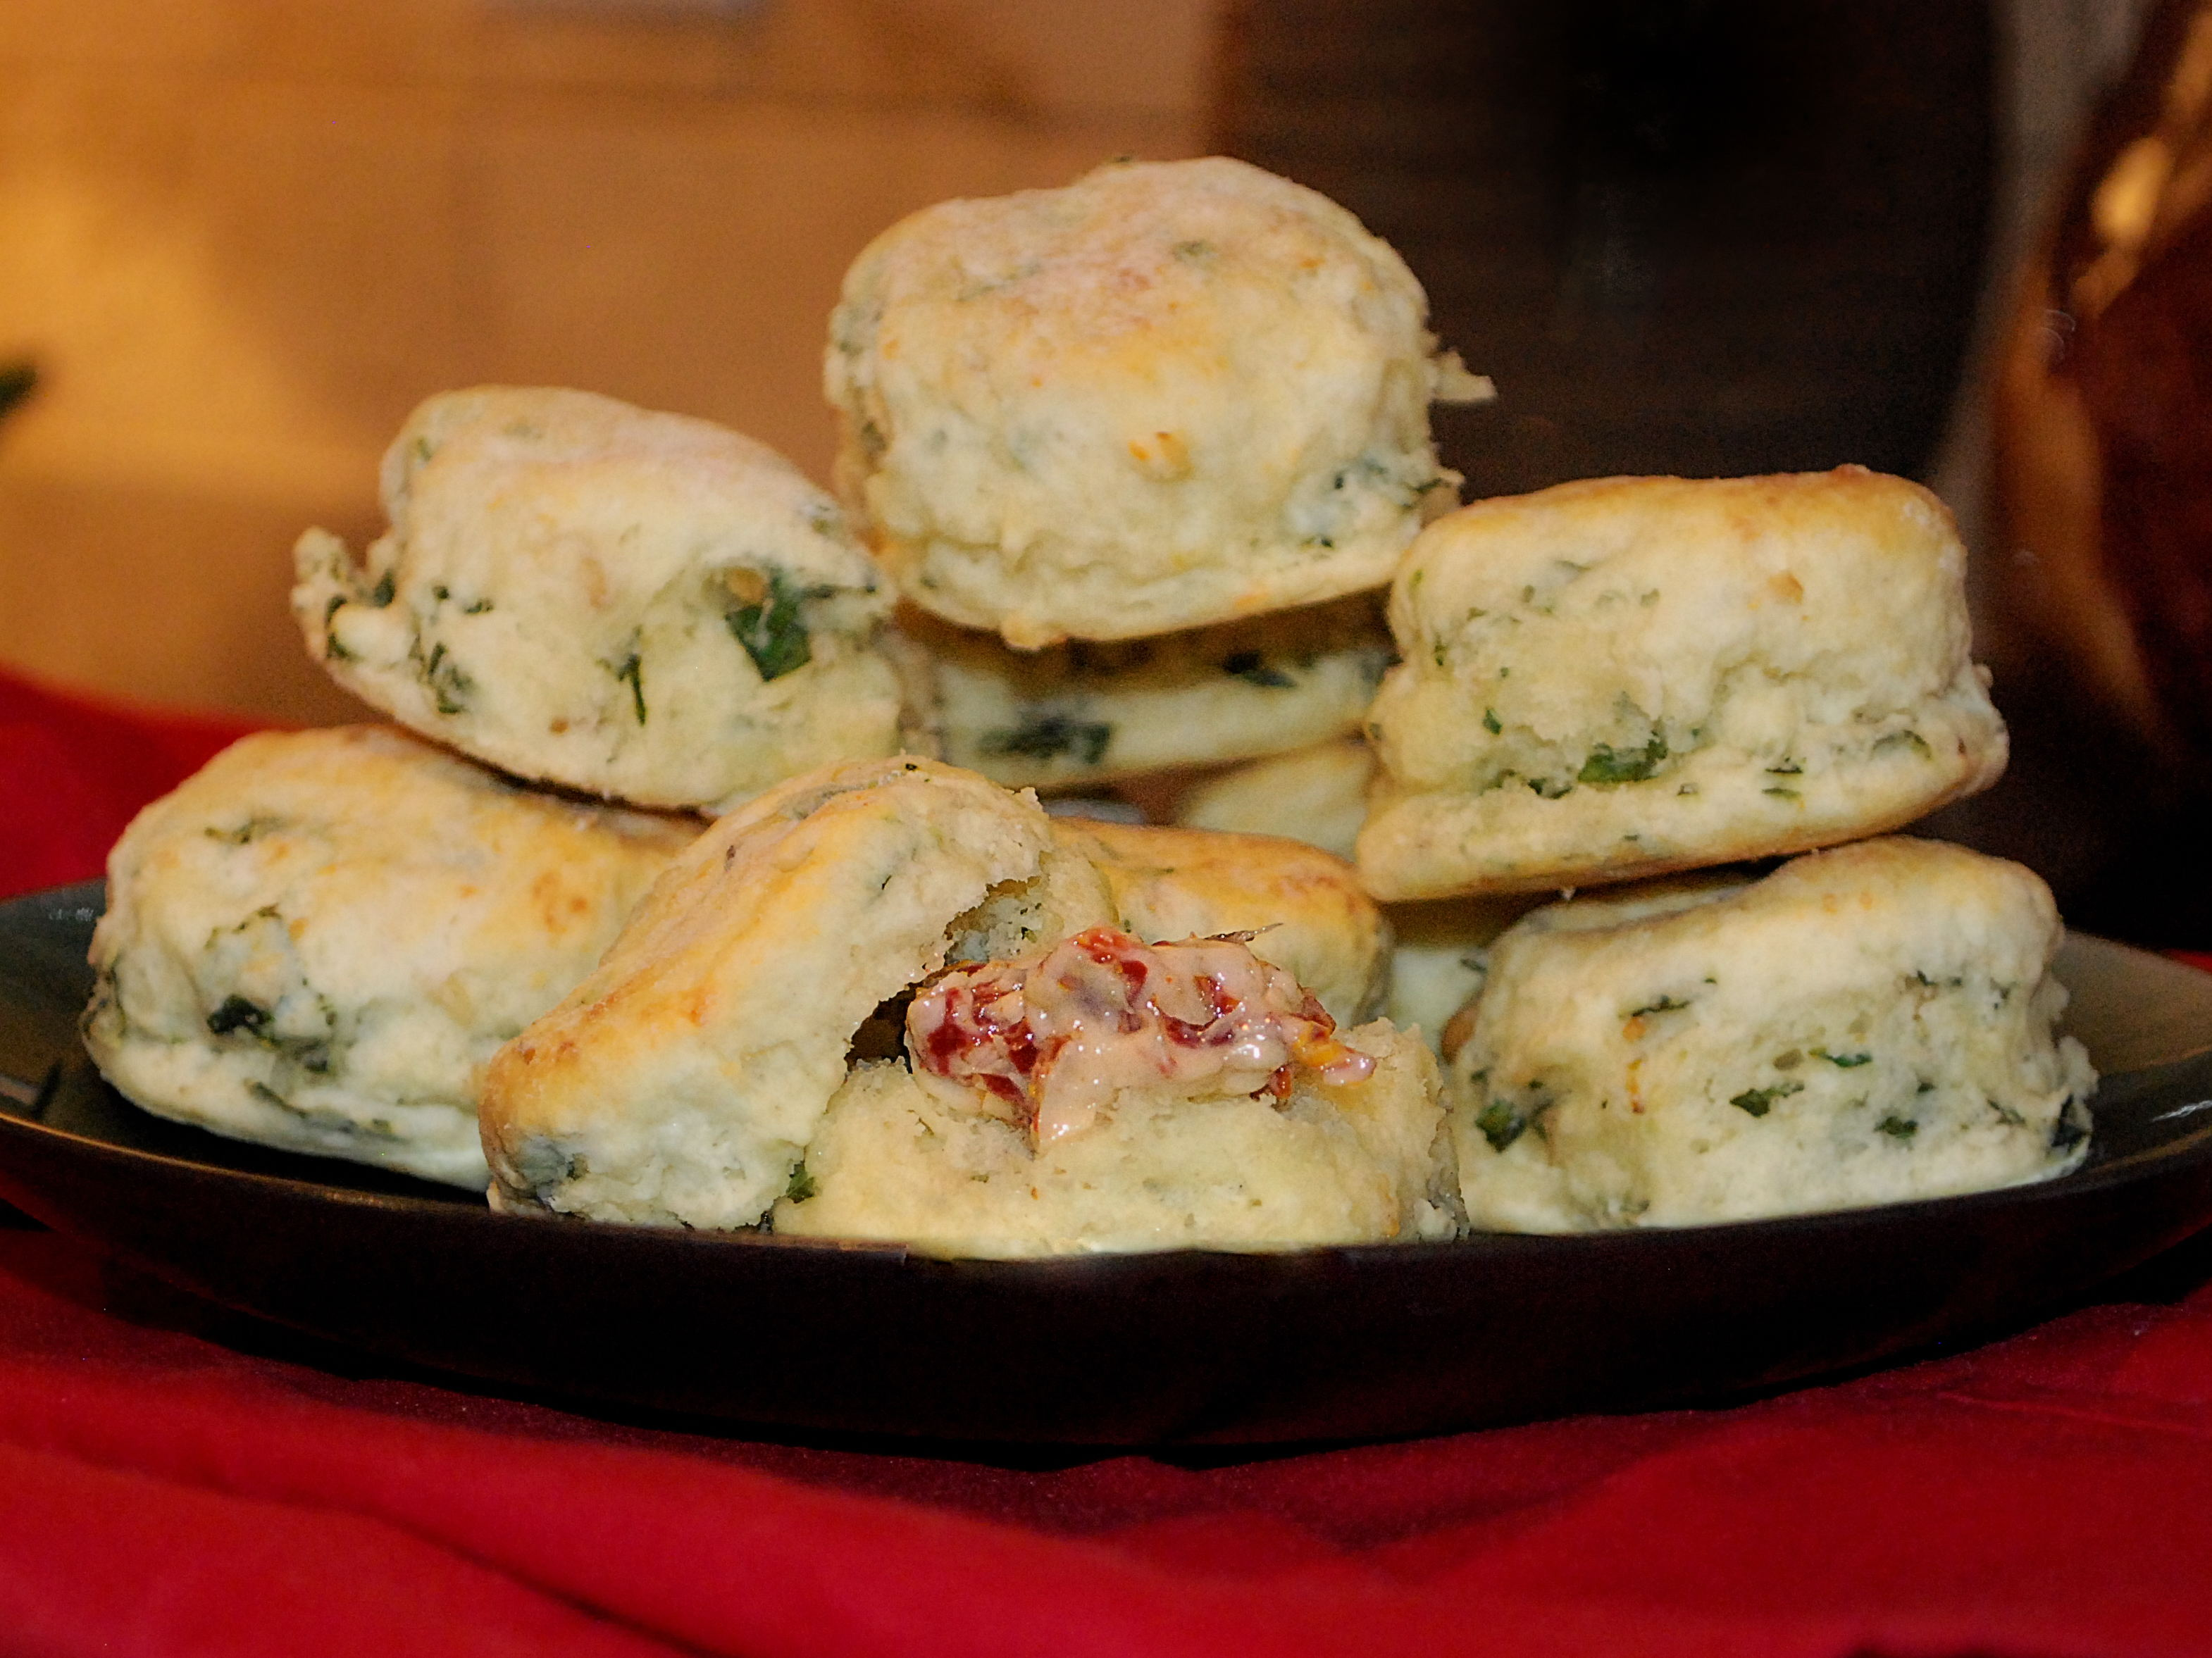 ... -Basil Tea Biscuits with Roasted Garlic and Sun-Dried Tomato Butter